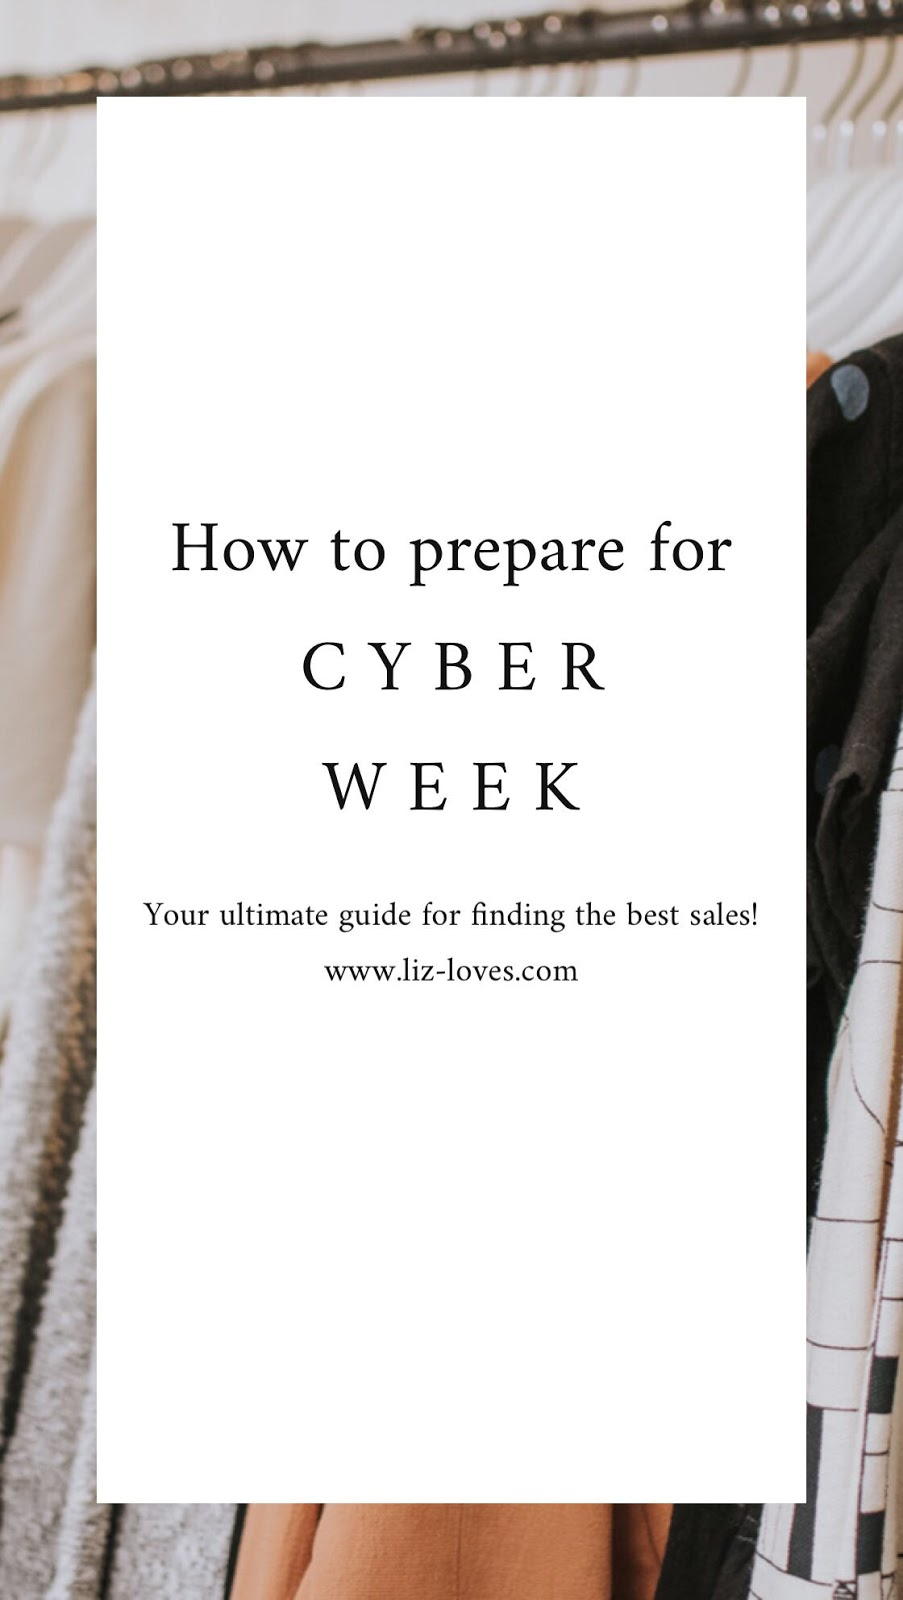 How to Prepare for CYBER WEEK